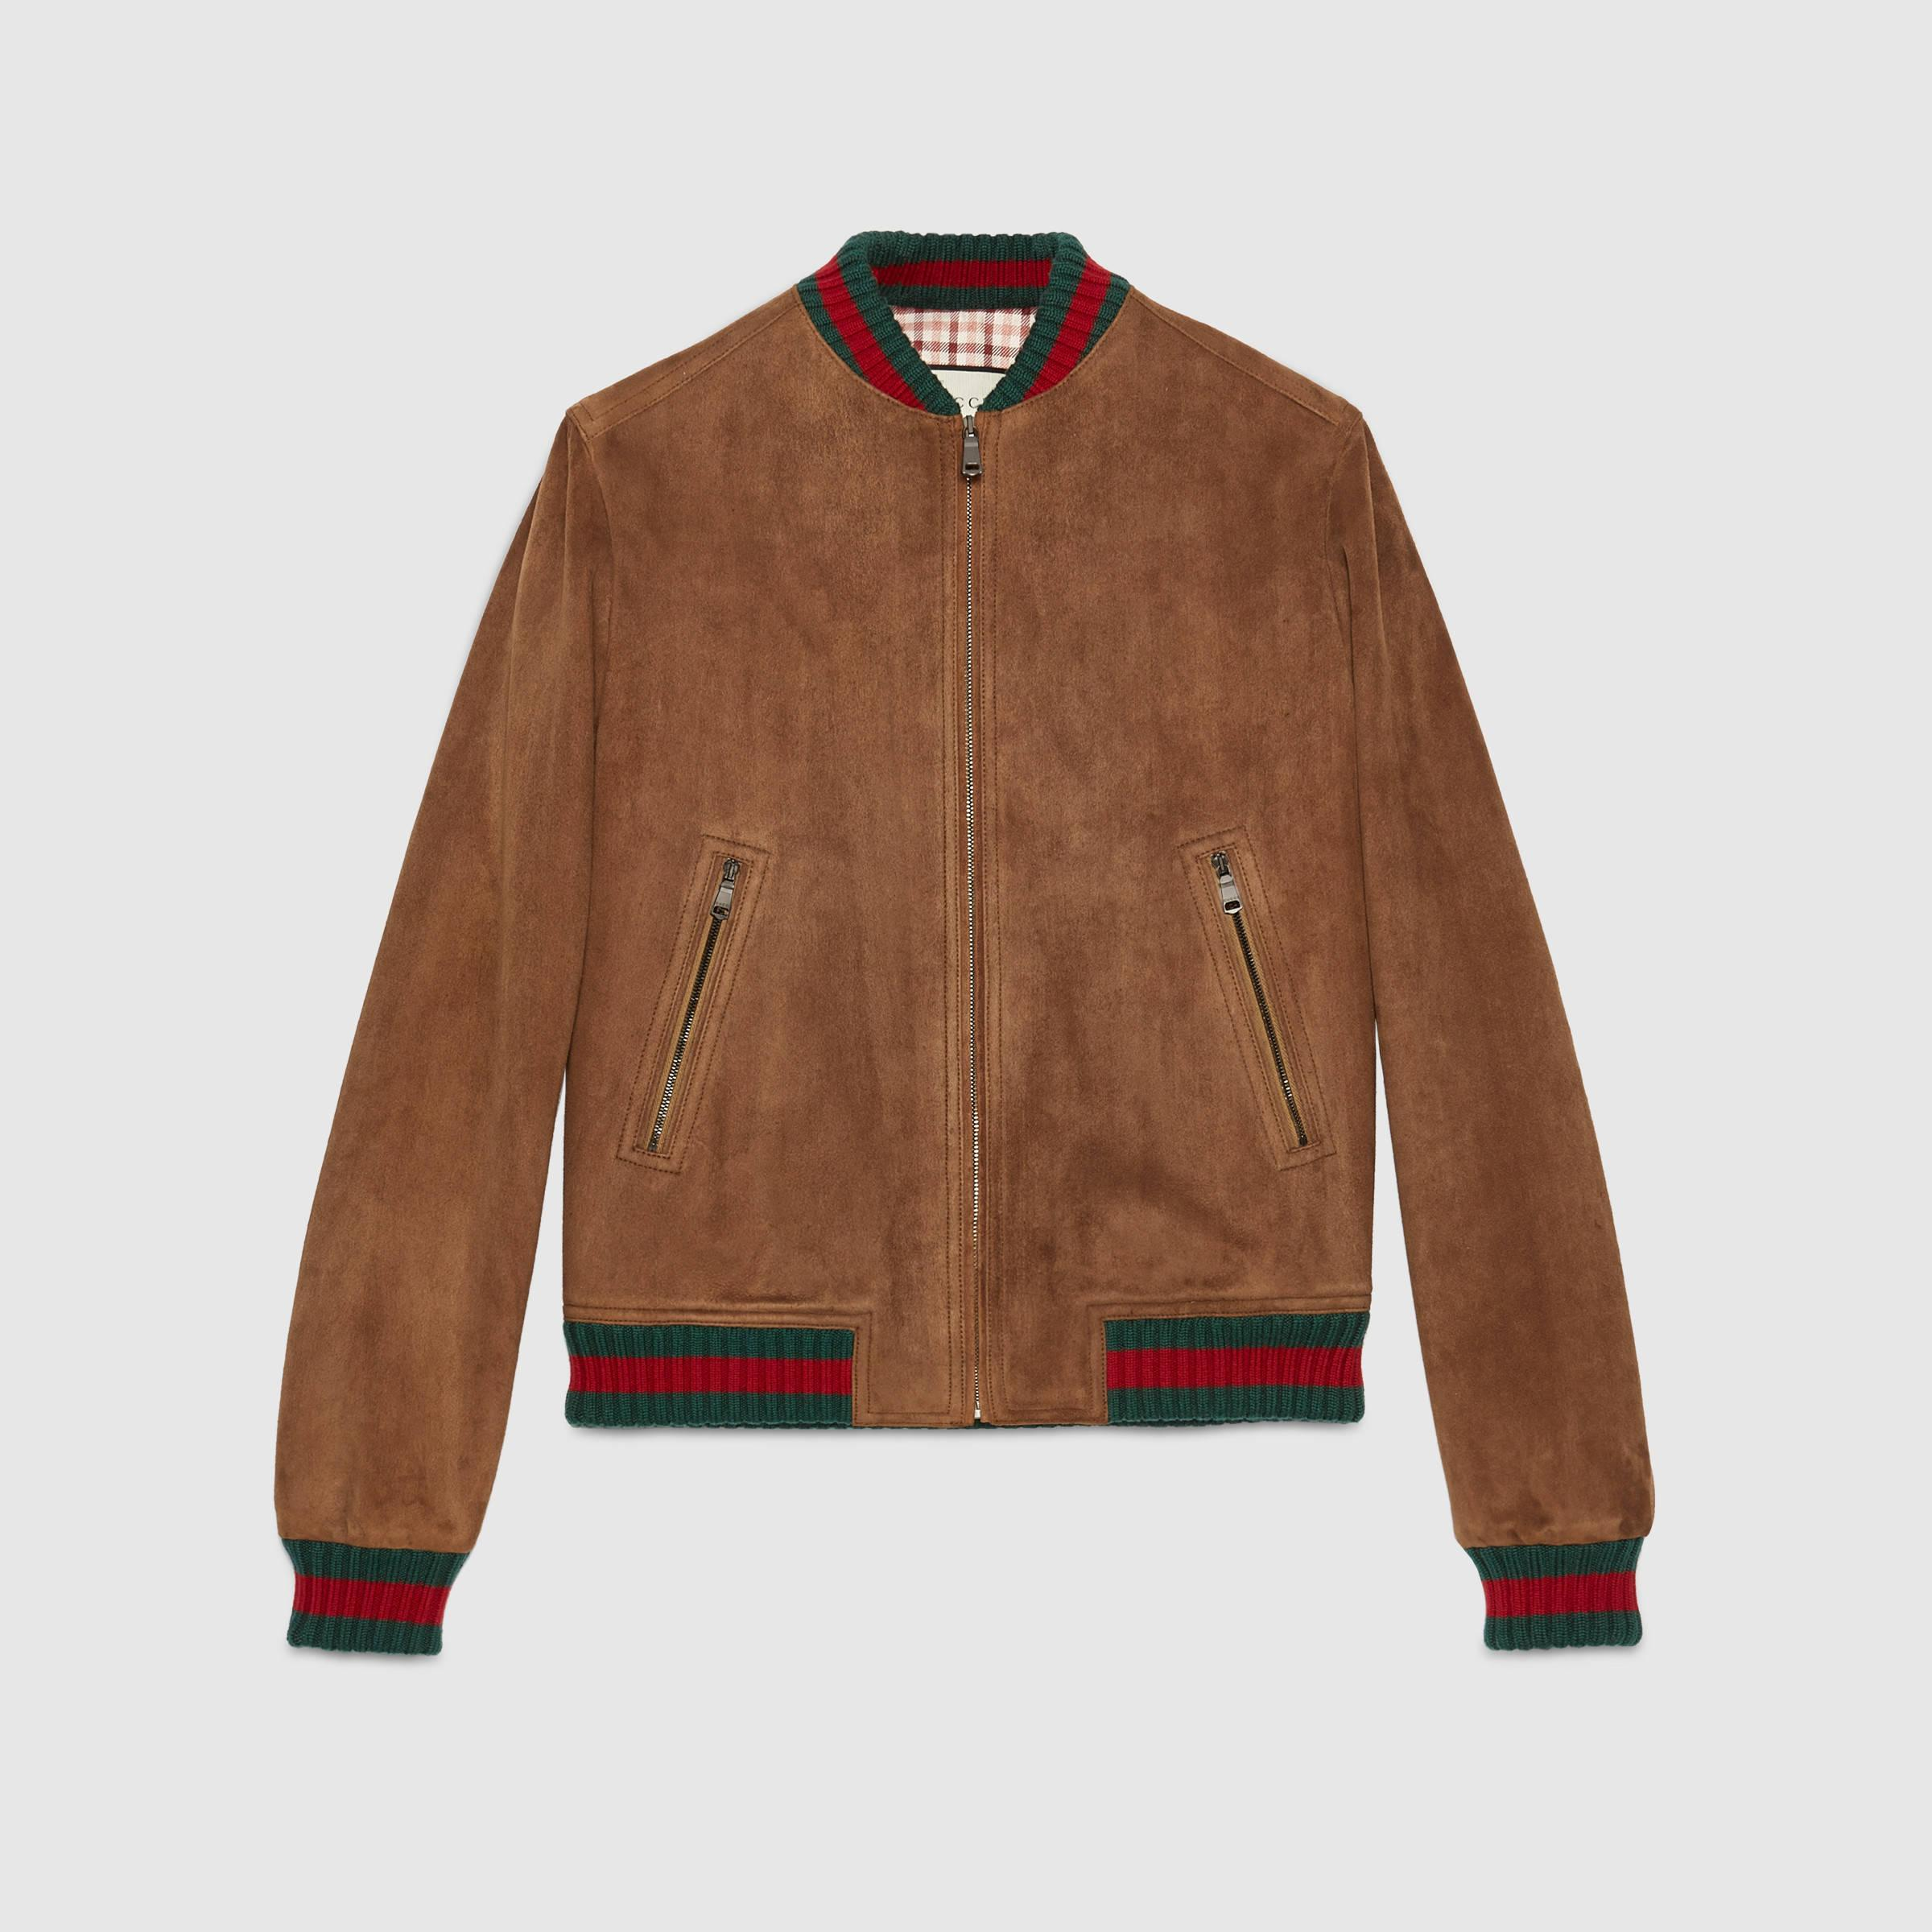 eb18d6e7fa2e Lyst - Gucci Suede Jacket With Web in Brown for Men